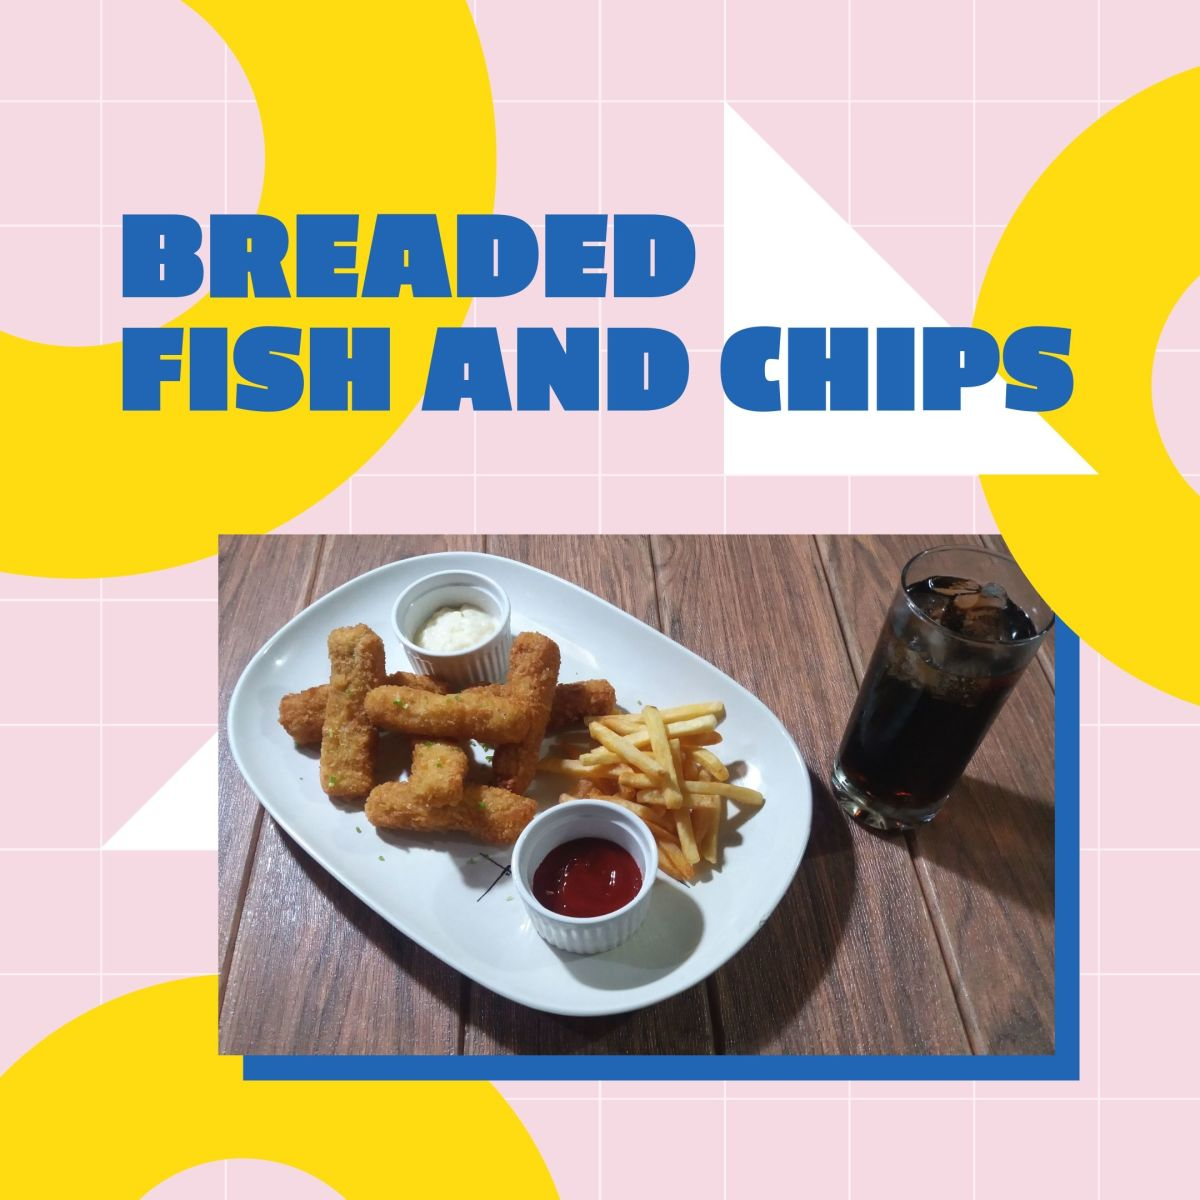 How to Cook Breaded Fish and Chips